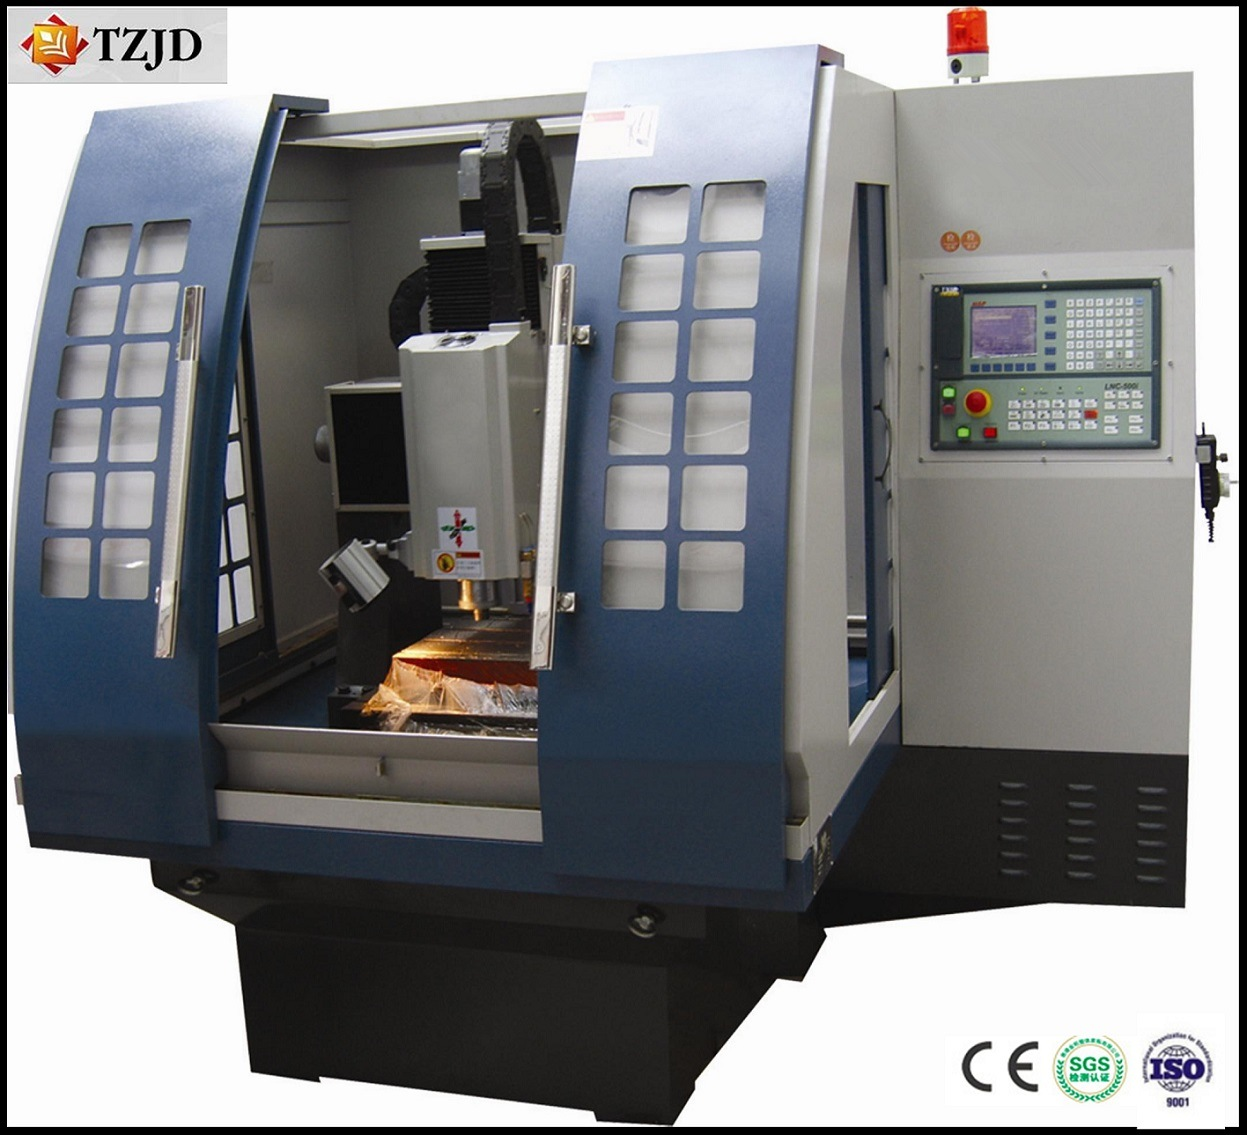 Newest Tzjd-6060mbn CNC Engraving Machine Mold Milling Machine pictures & photos